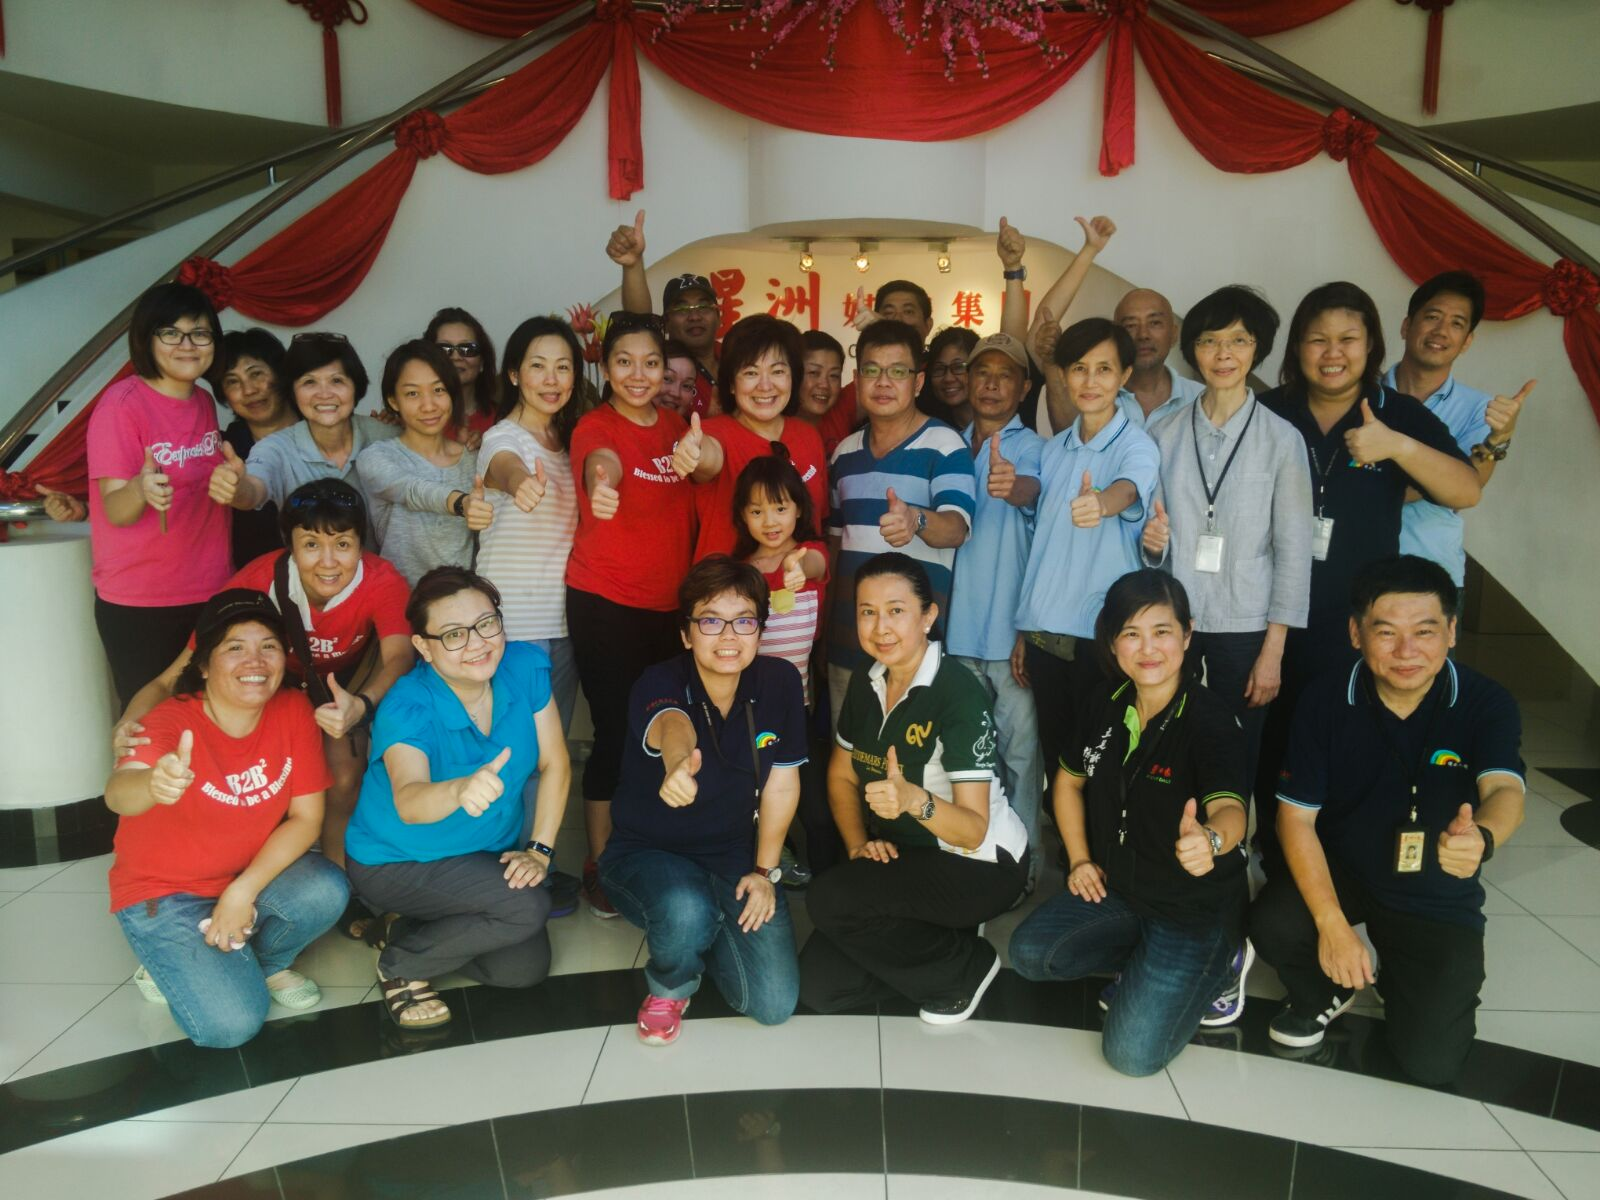 Sarah (in red t-shirt, standing fifth from left) at the Sin Chew Donation Drive this year.